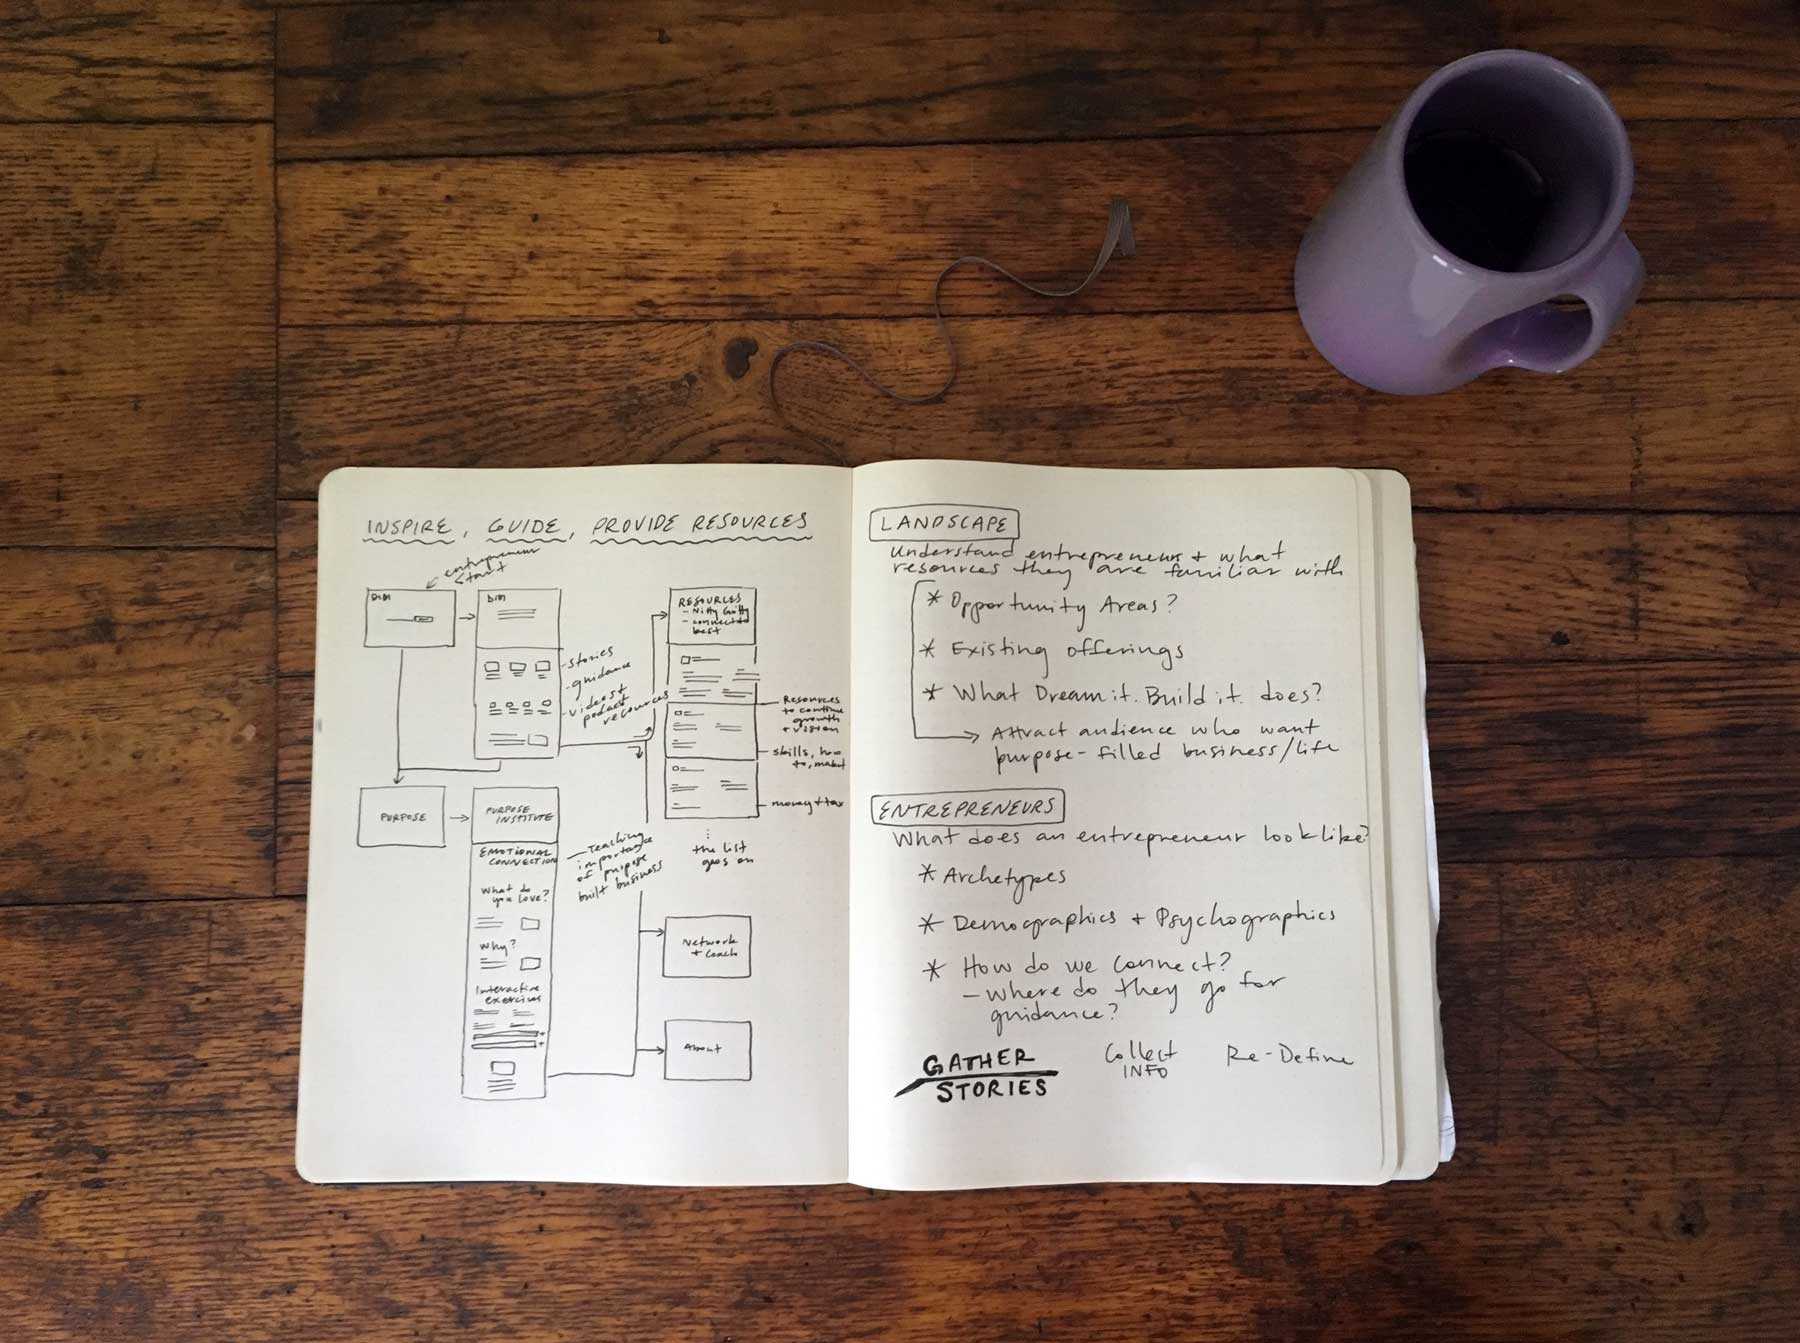 dream-it-build-it-wireframes-and-research-topics.jpg